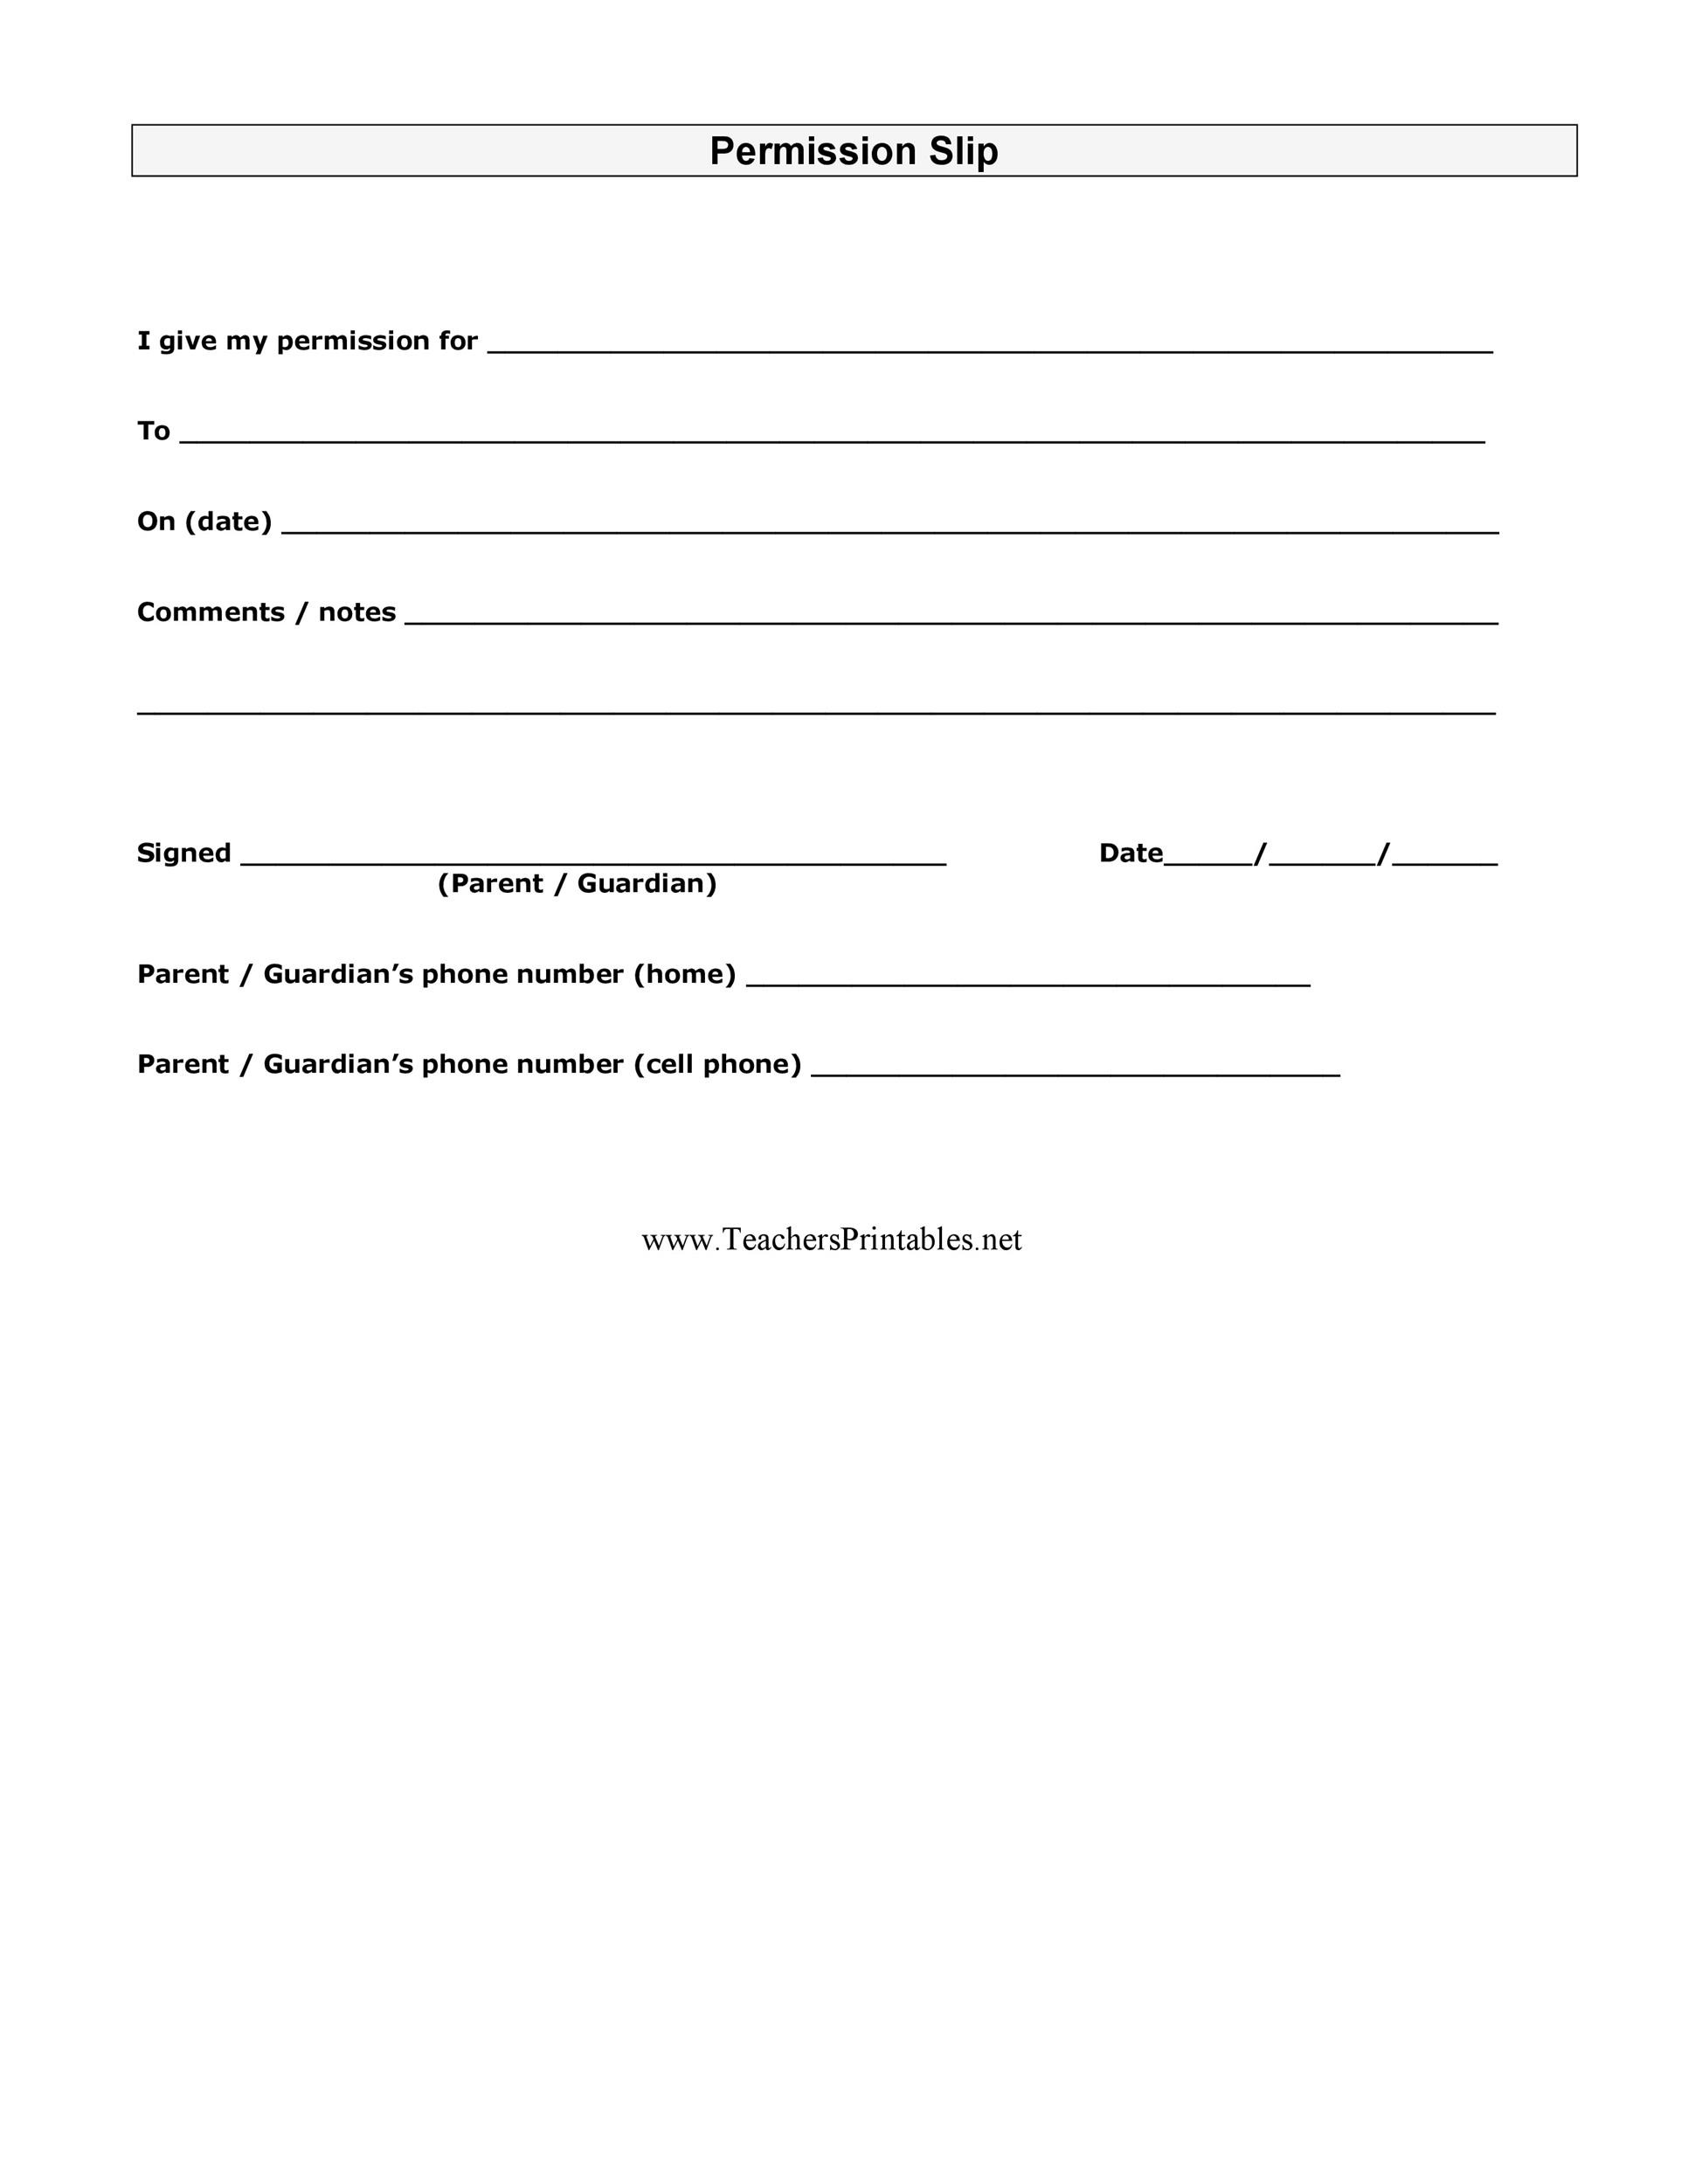 35 permission slip templates field trip forms free permission slip 07 spiritdancerdesigns Choice Image